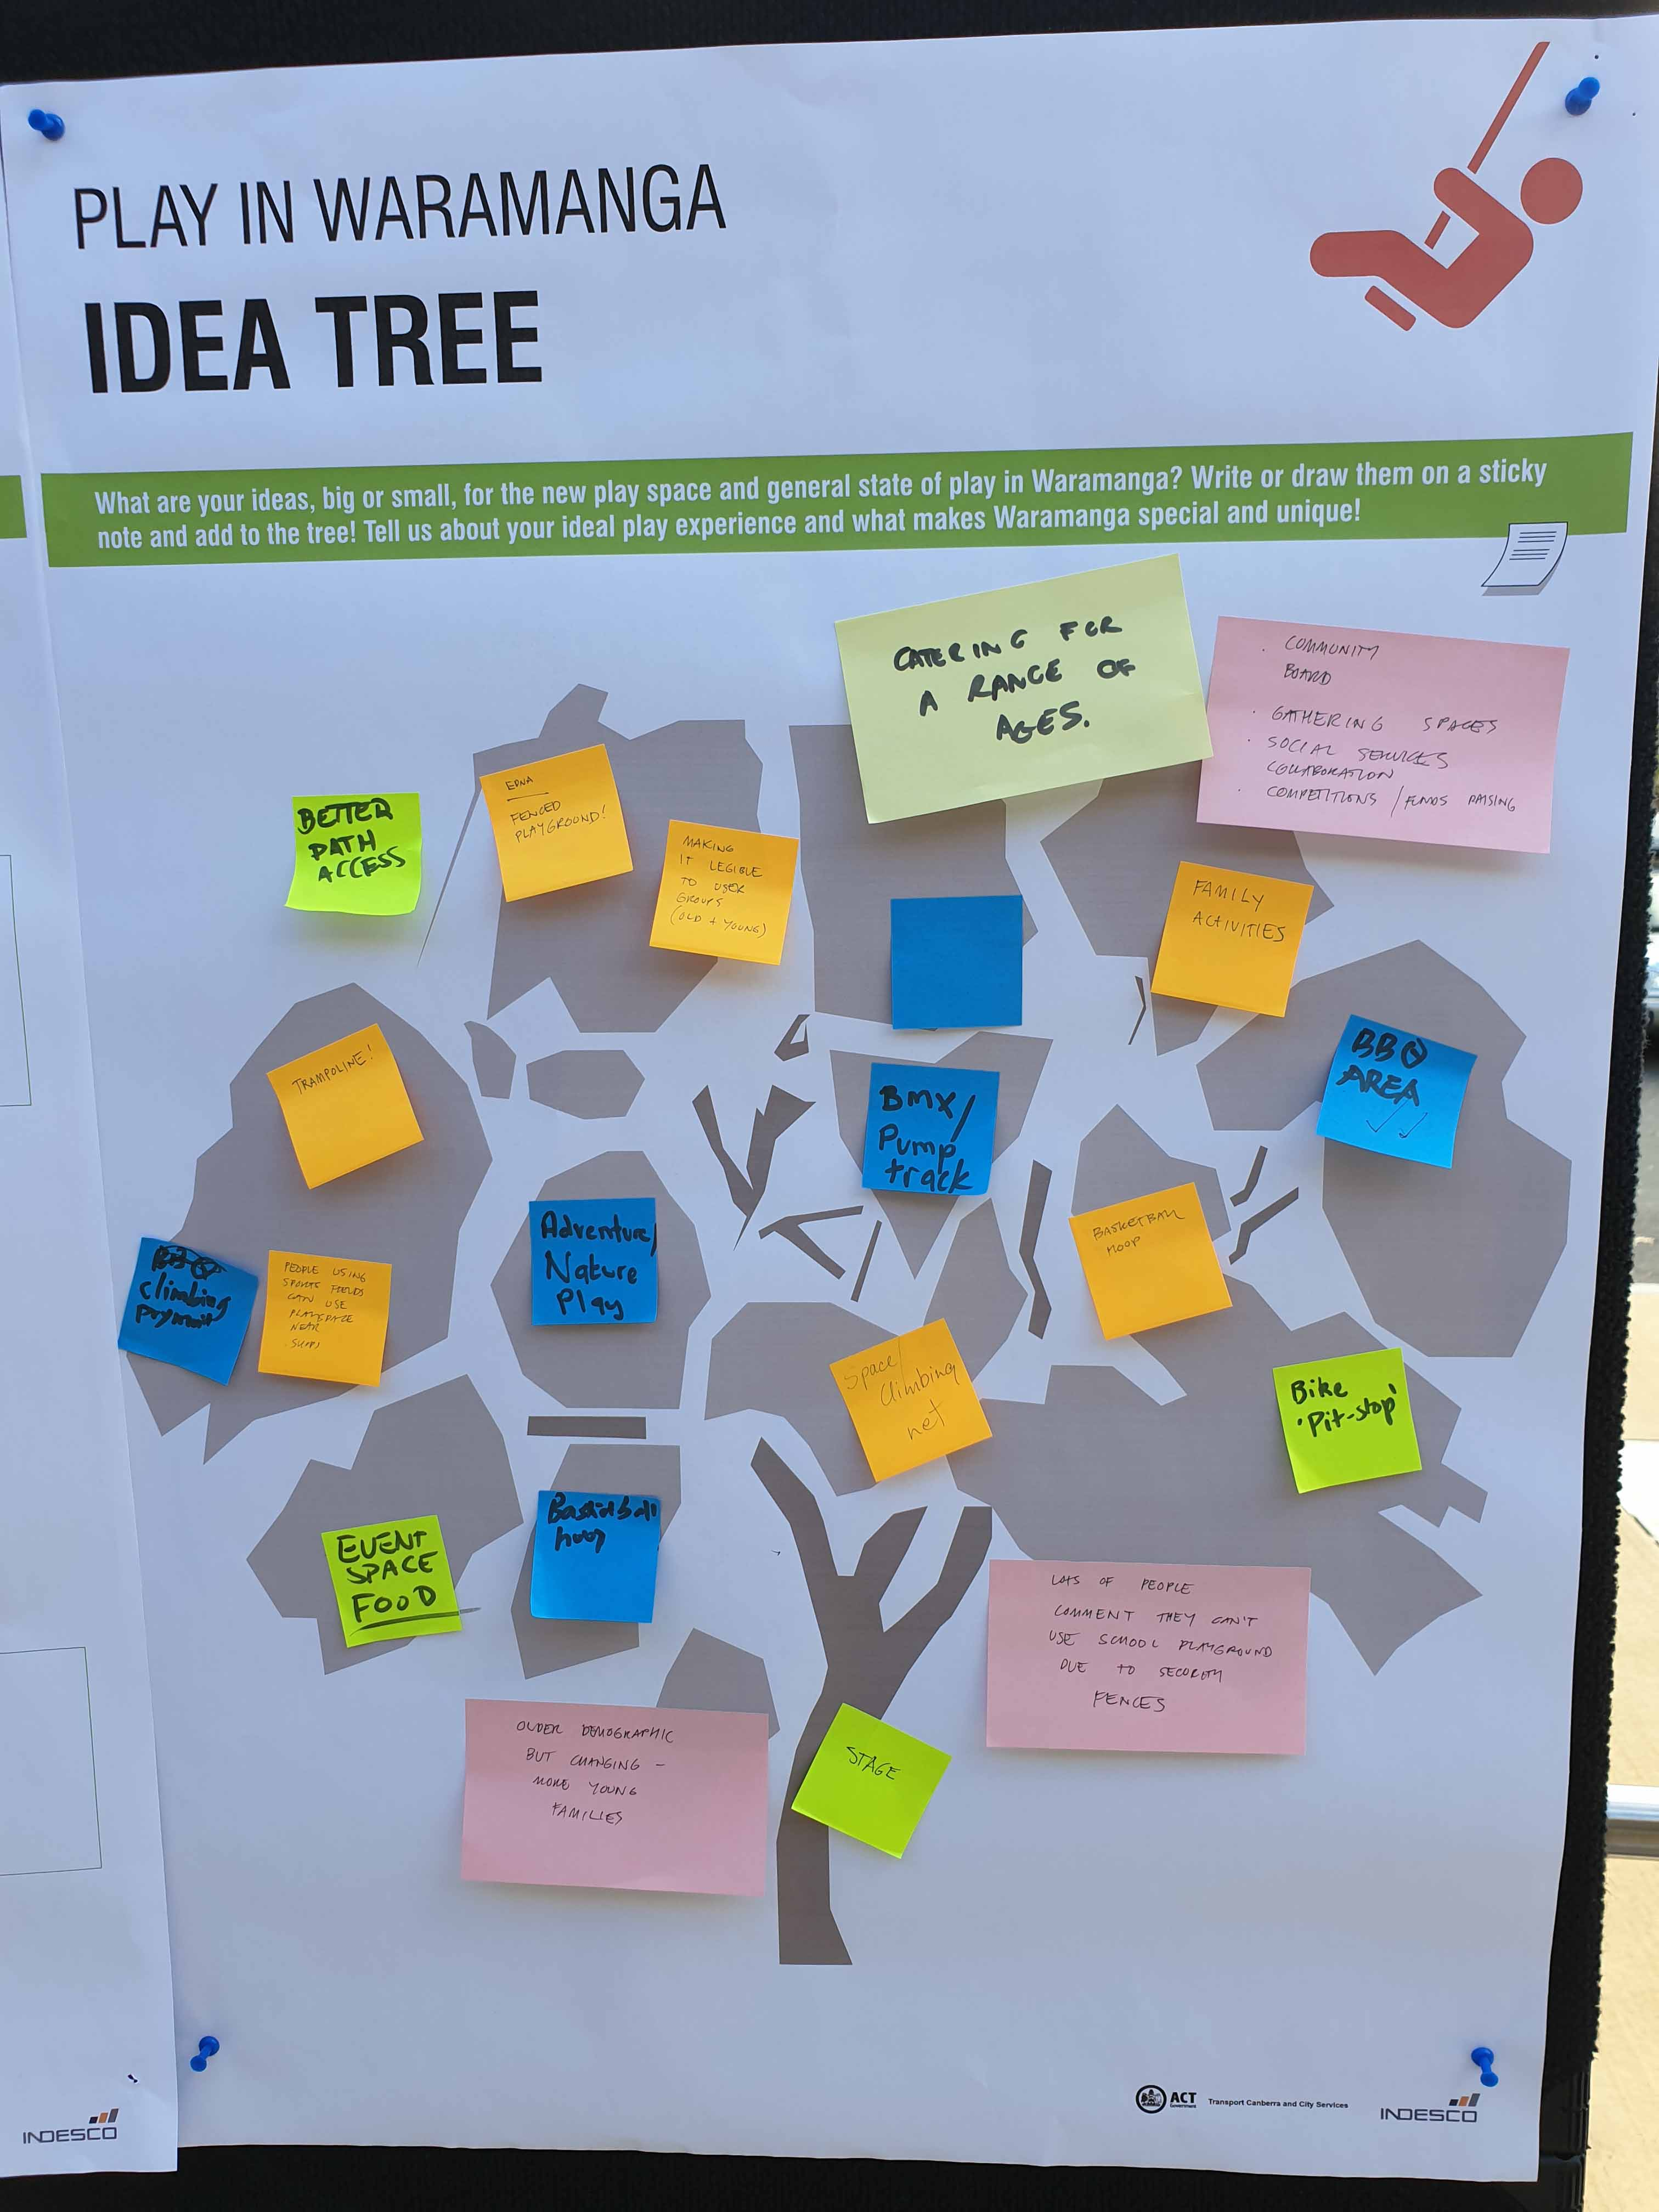 Ideas from Waramanga residents